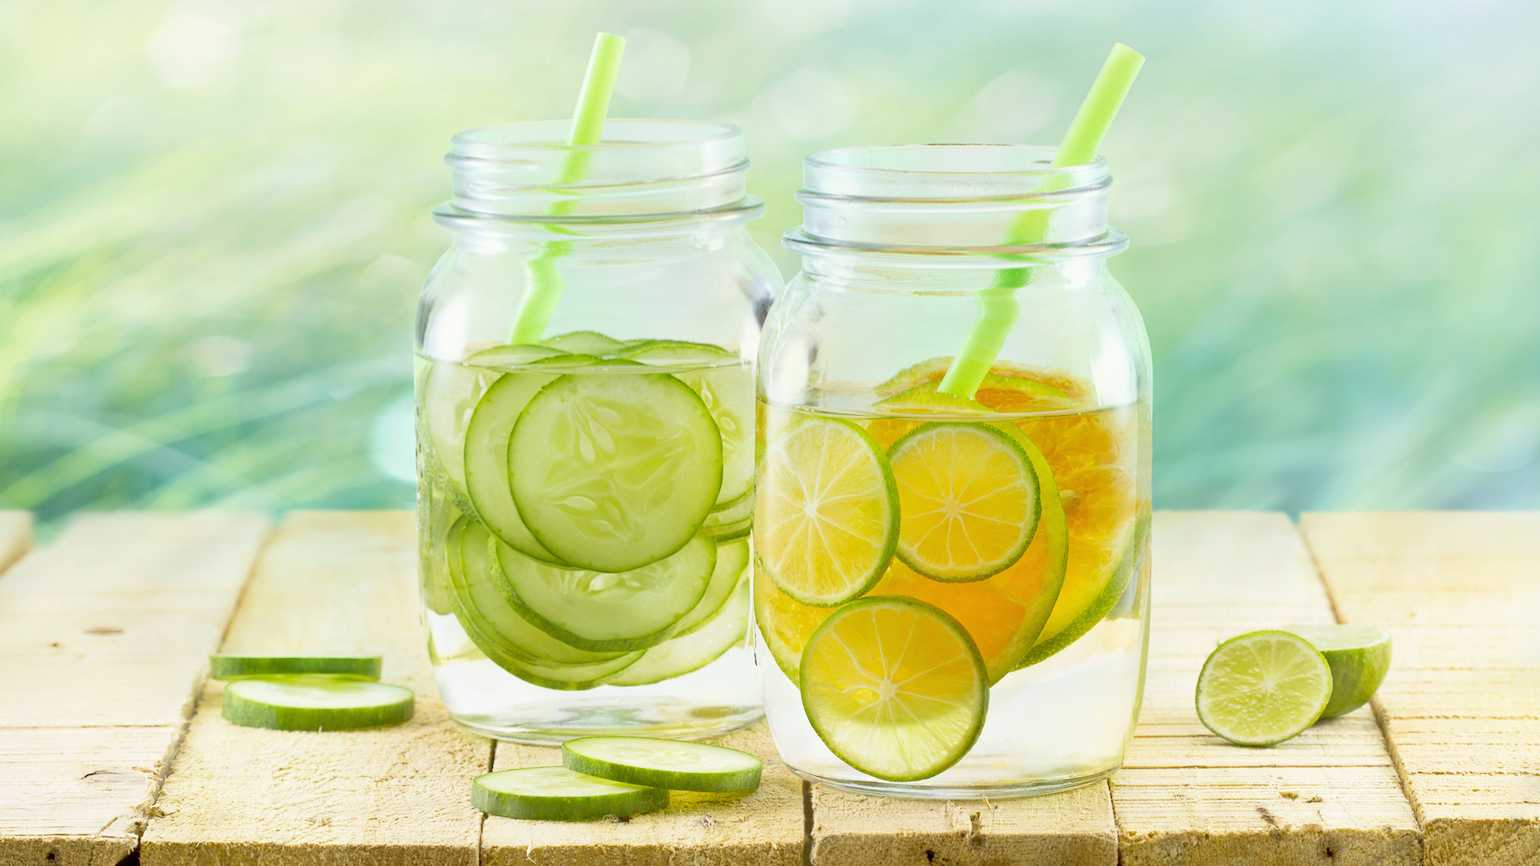 Healthy, flavored water for summer